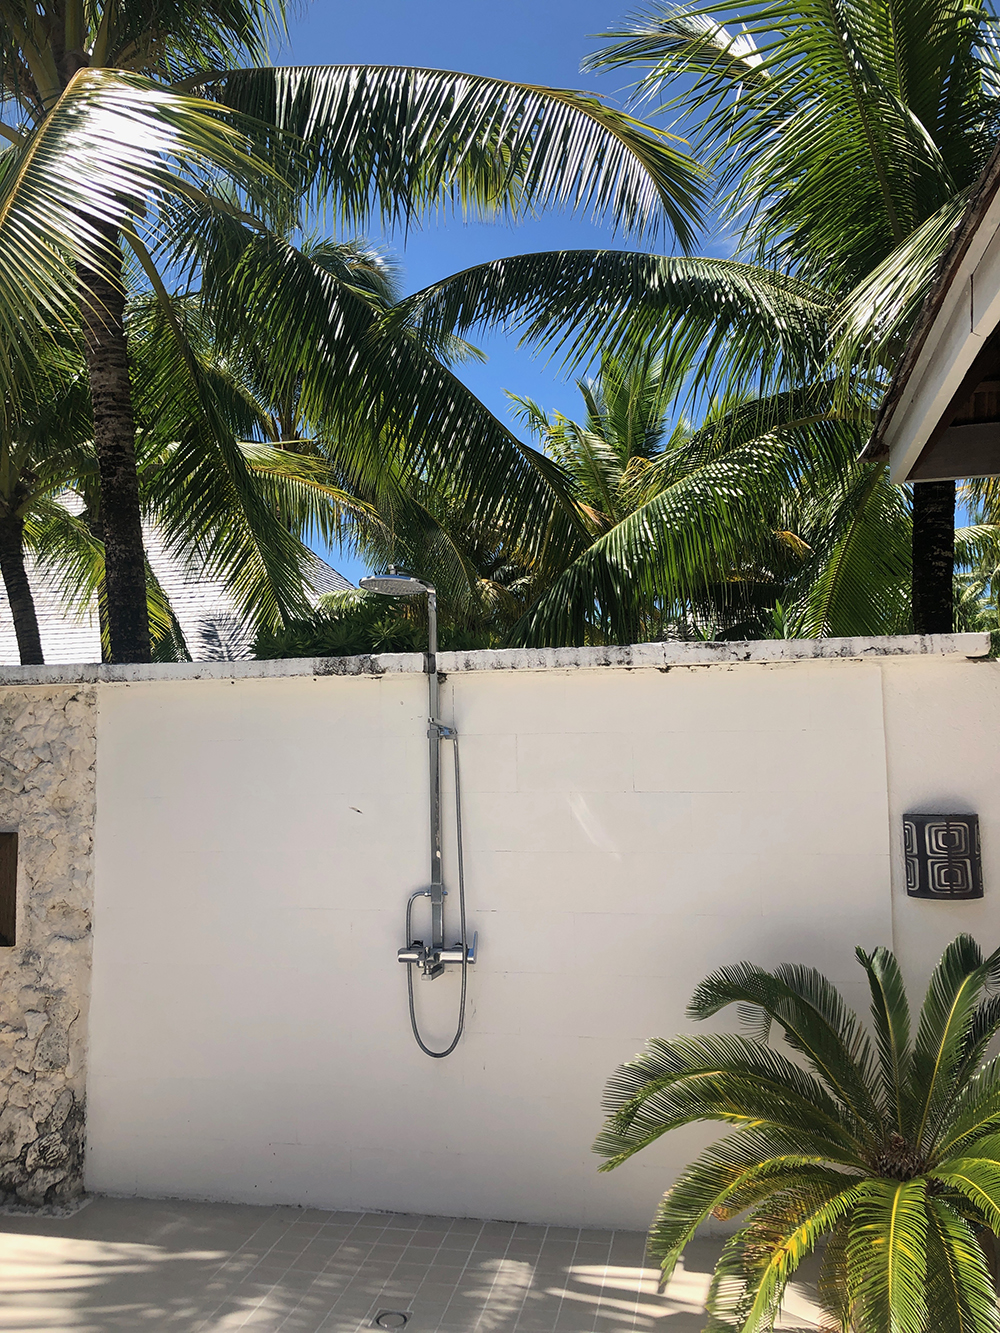 The refreshing outdoor shower in the private wellness area.